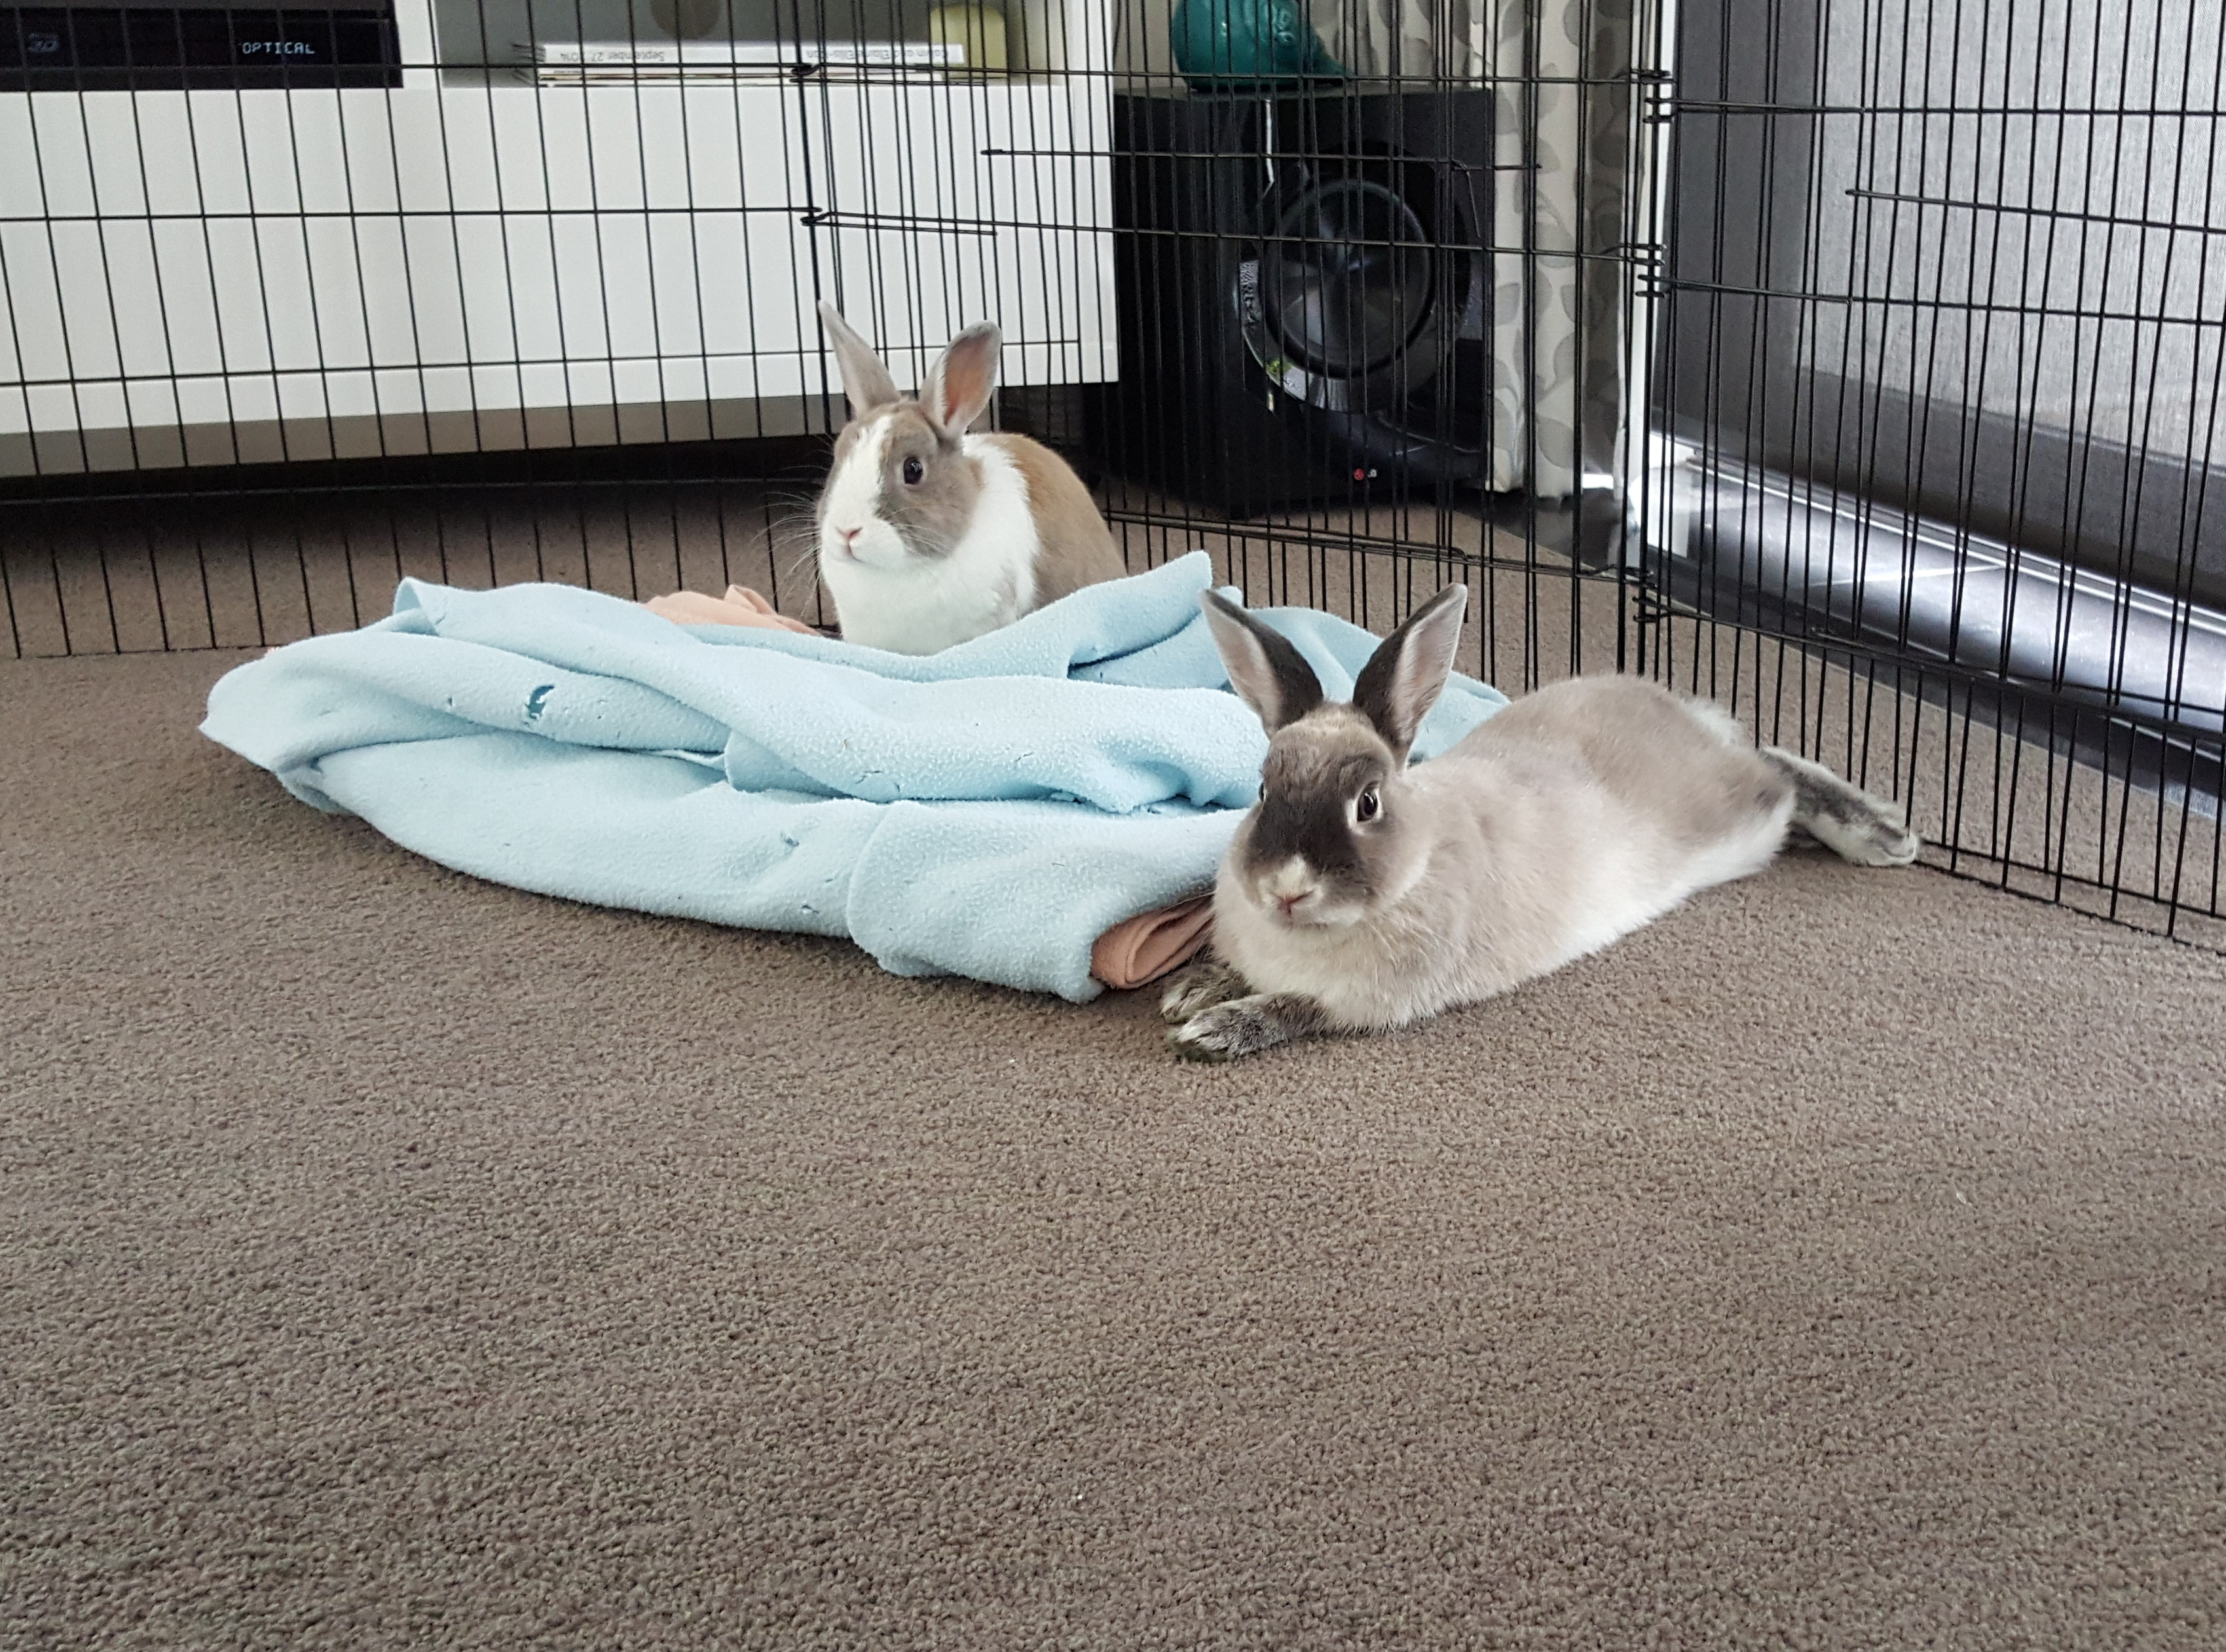 Bonding Rabbits: A How to from Georgia HRS